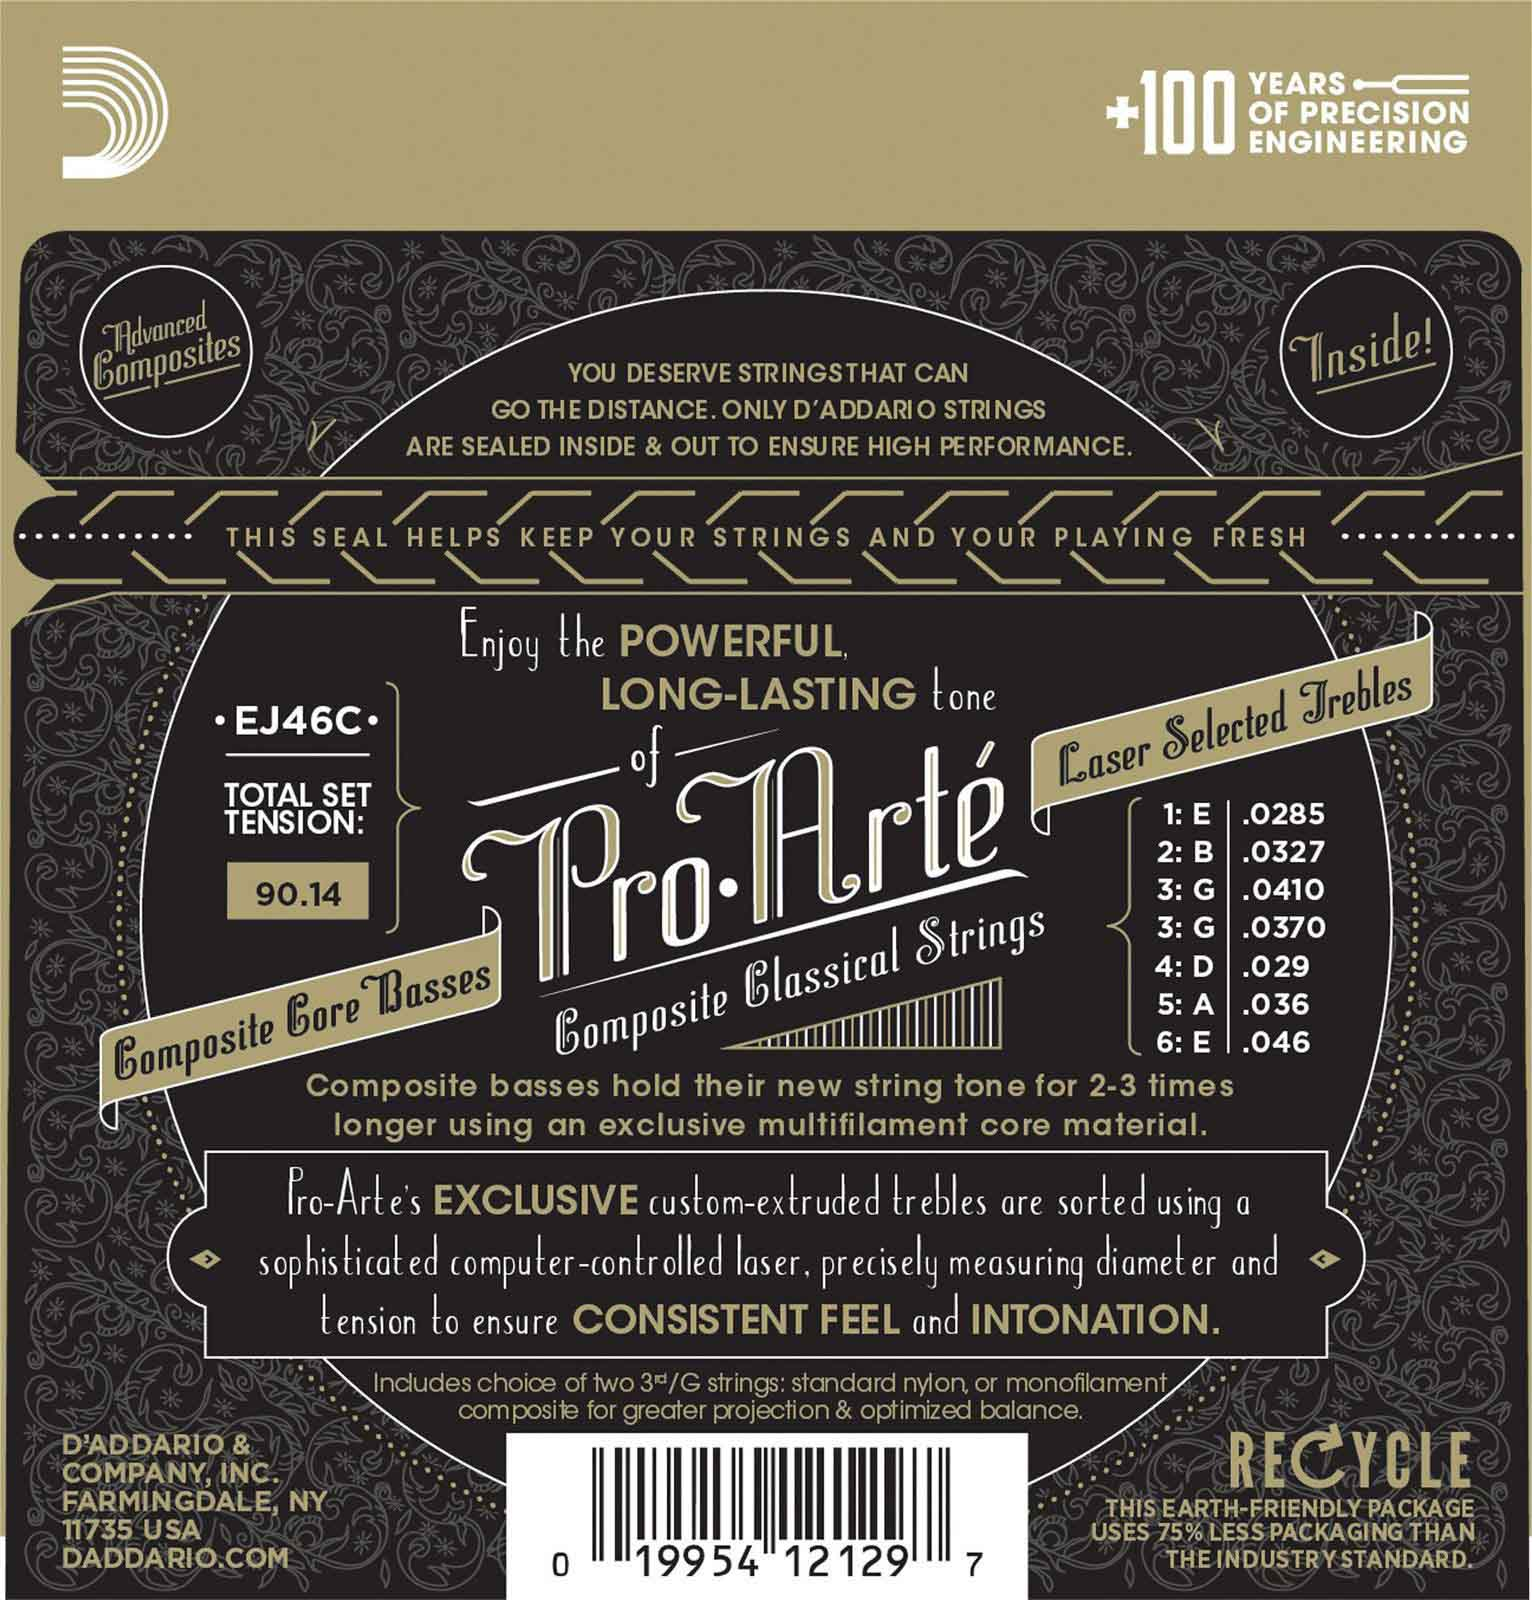 EJ46C PRO-ARTE COMPOSITE CLASSICAL GUITAR STRINGS HARD TENSION